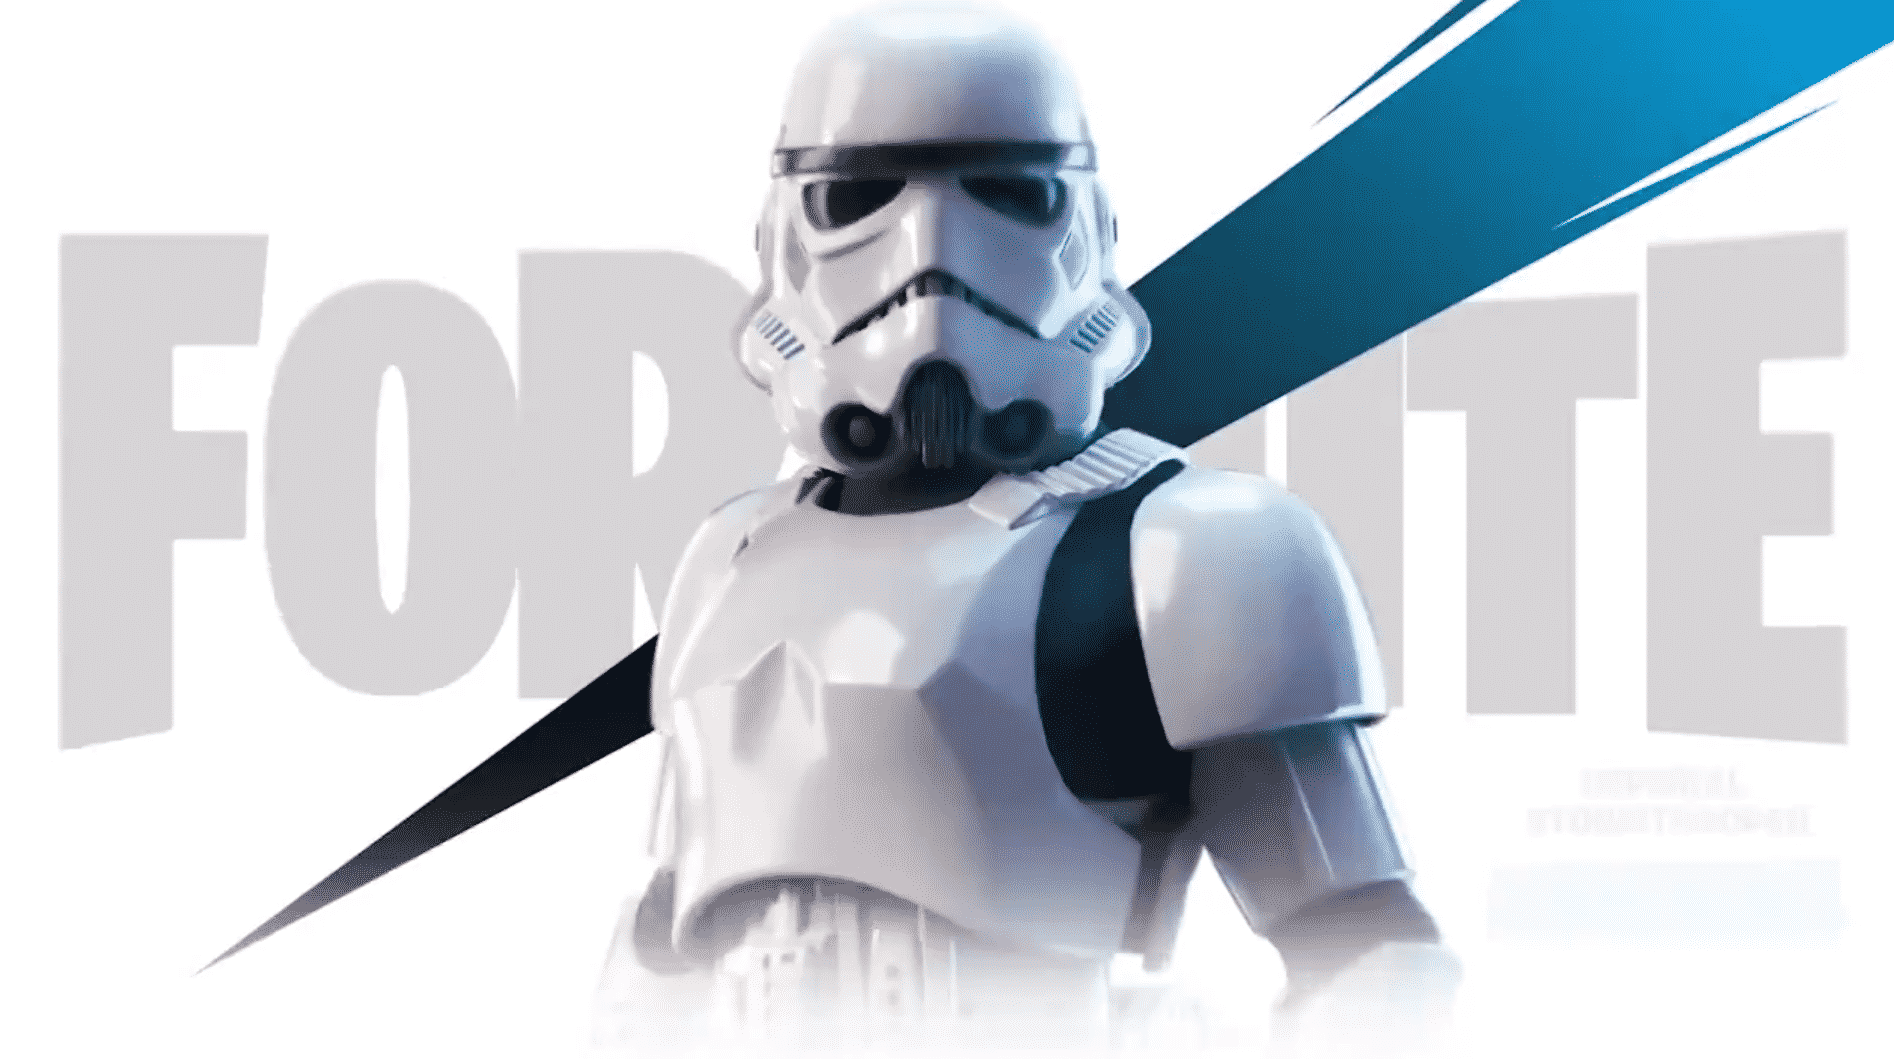 Fortnite X Star Wars Collaboration is Coming